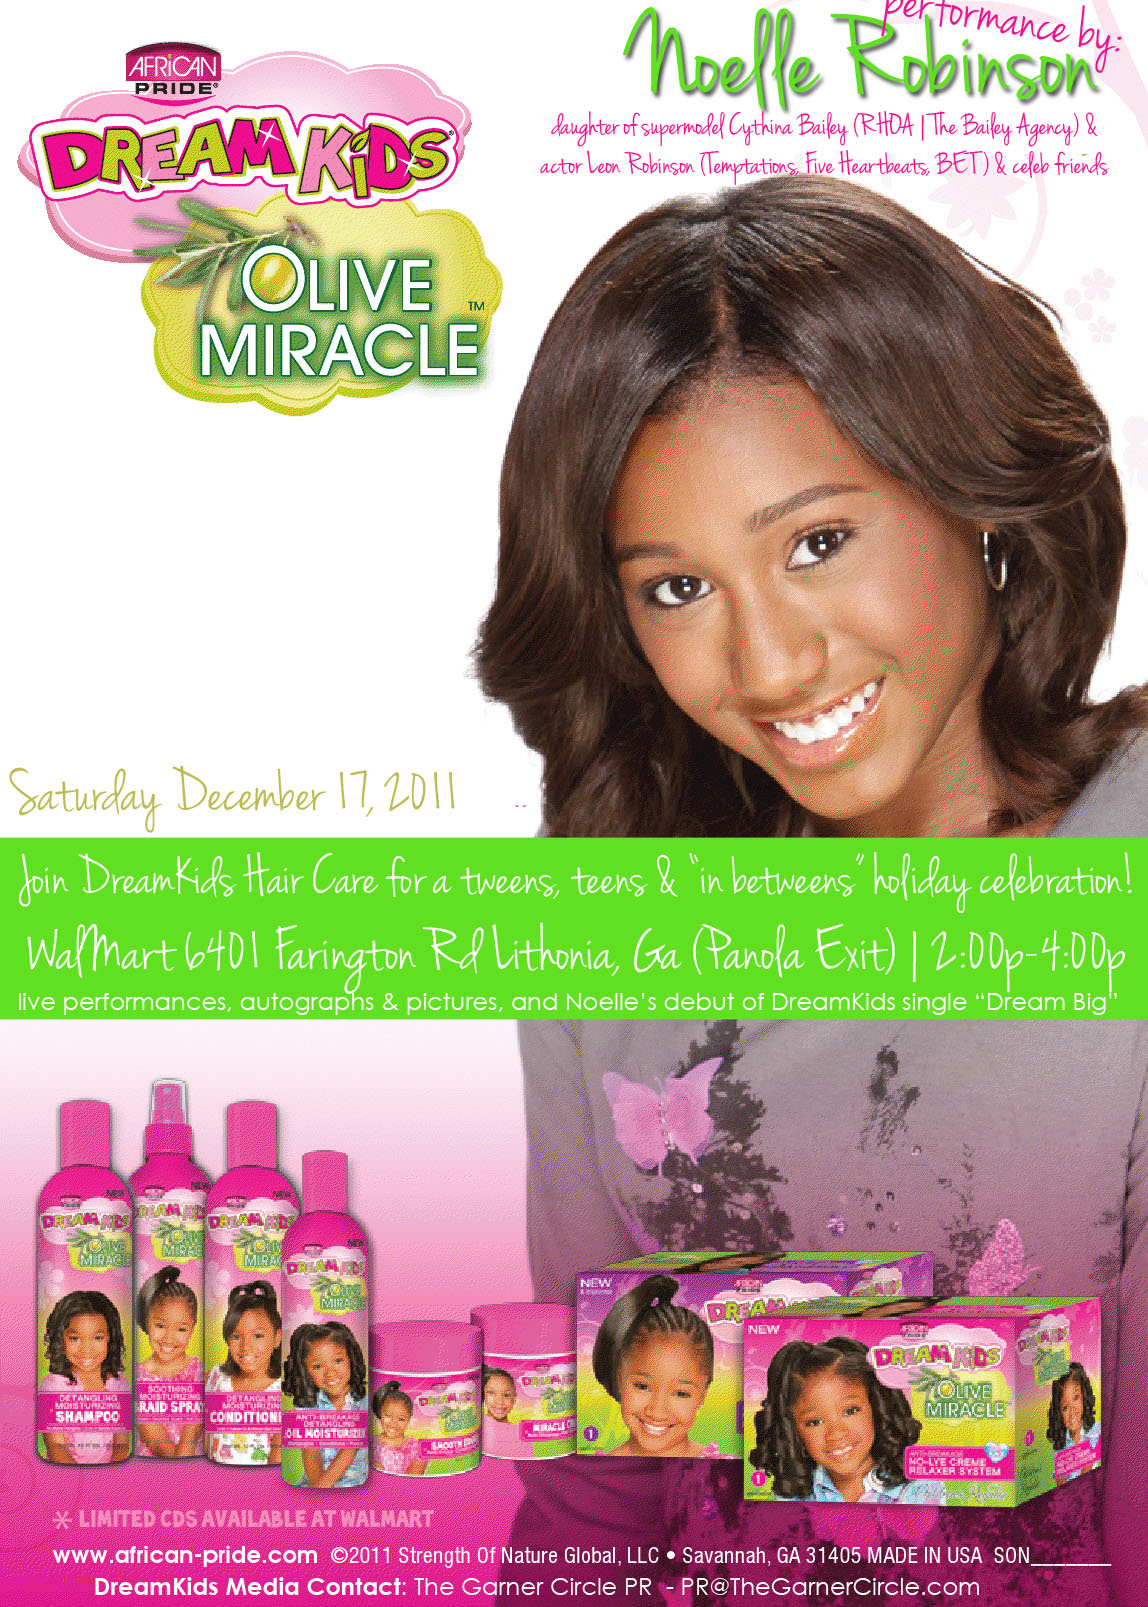 DreamKids Holiday Celebration featuring Noelle Robinson